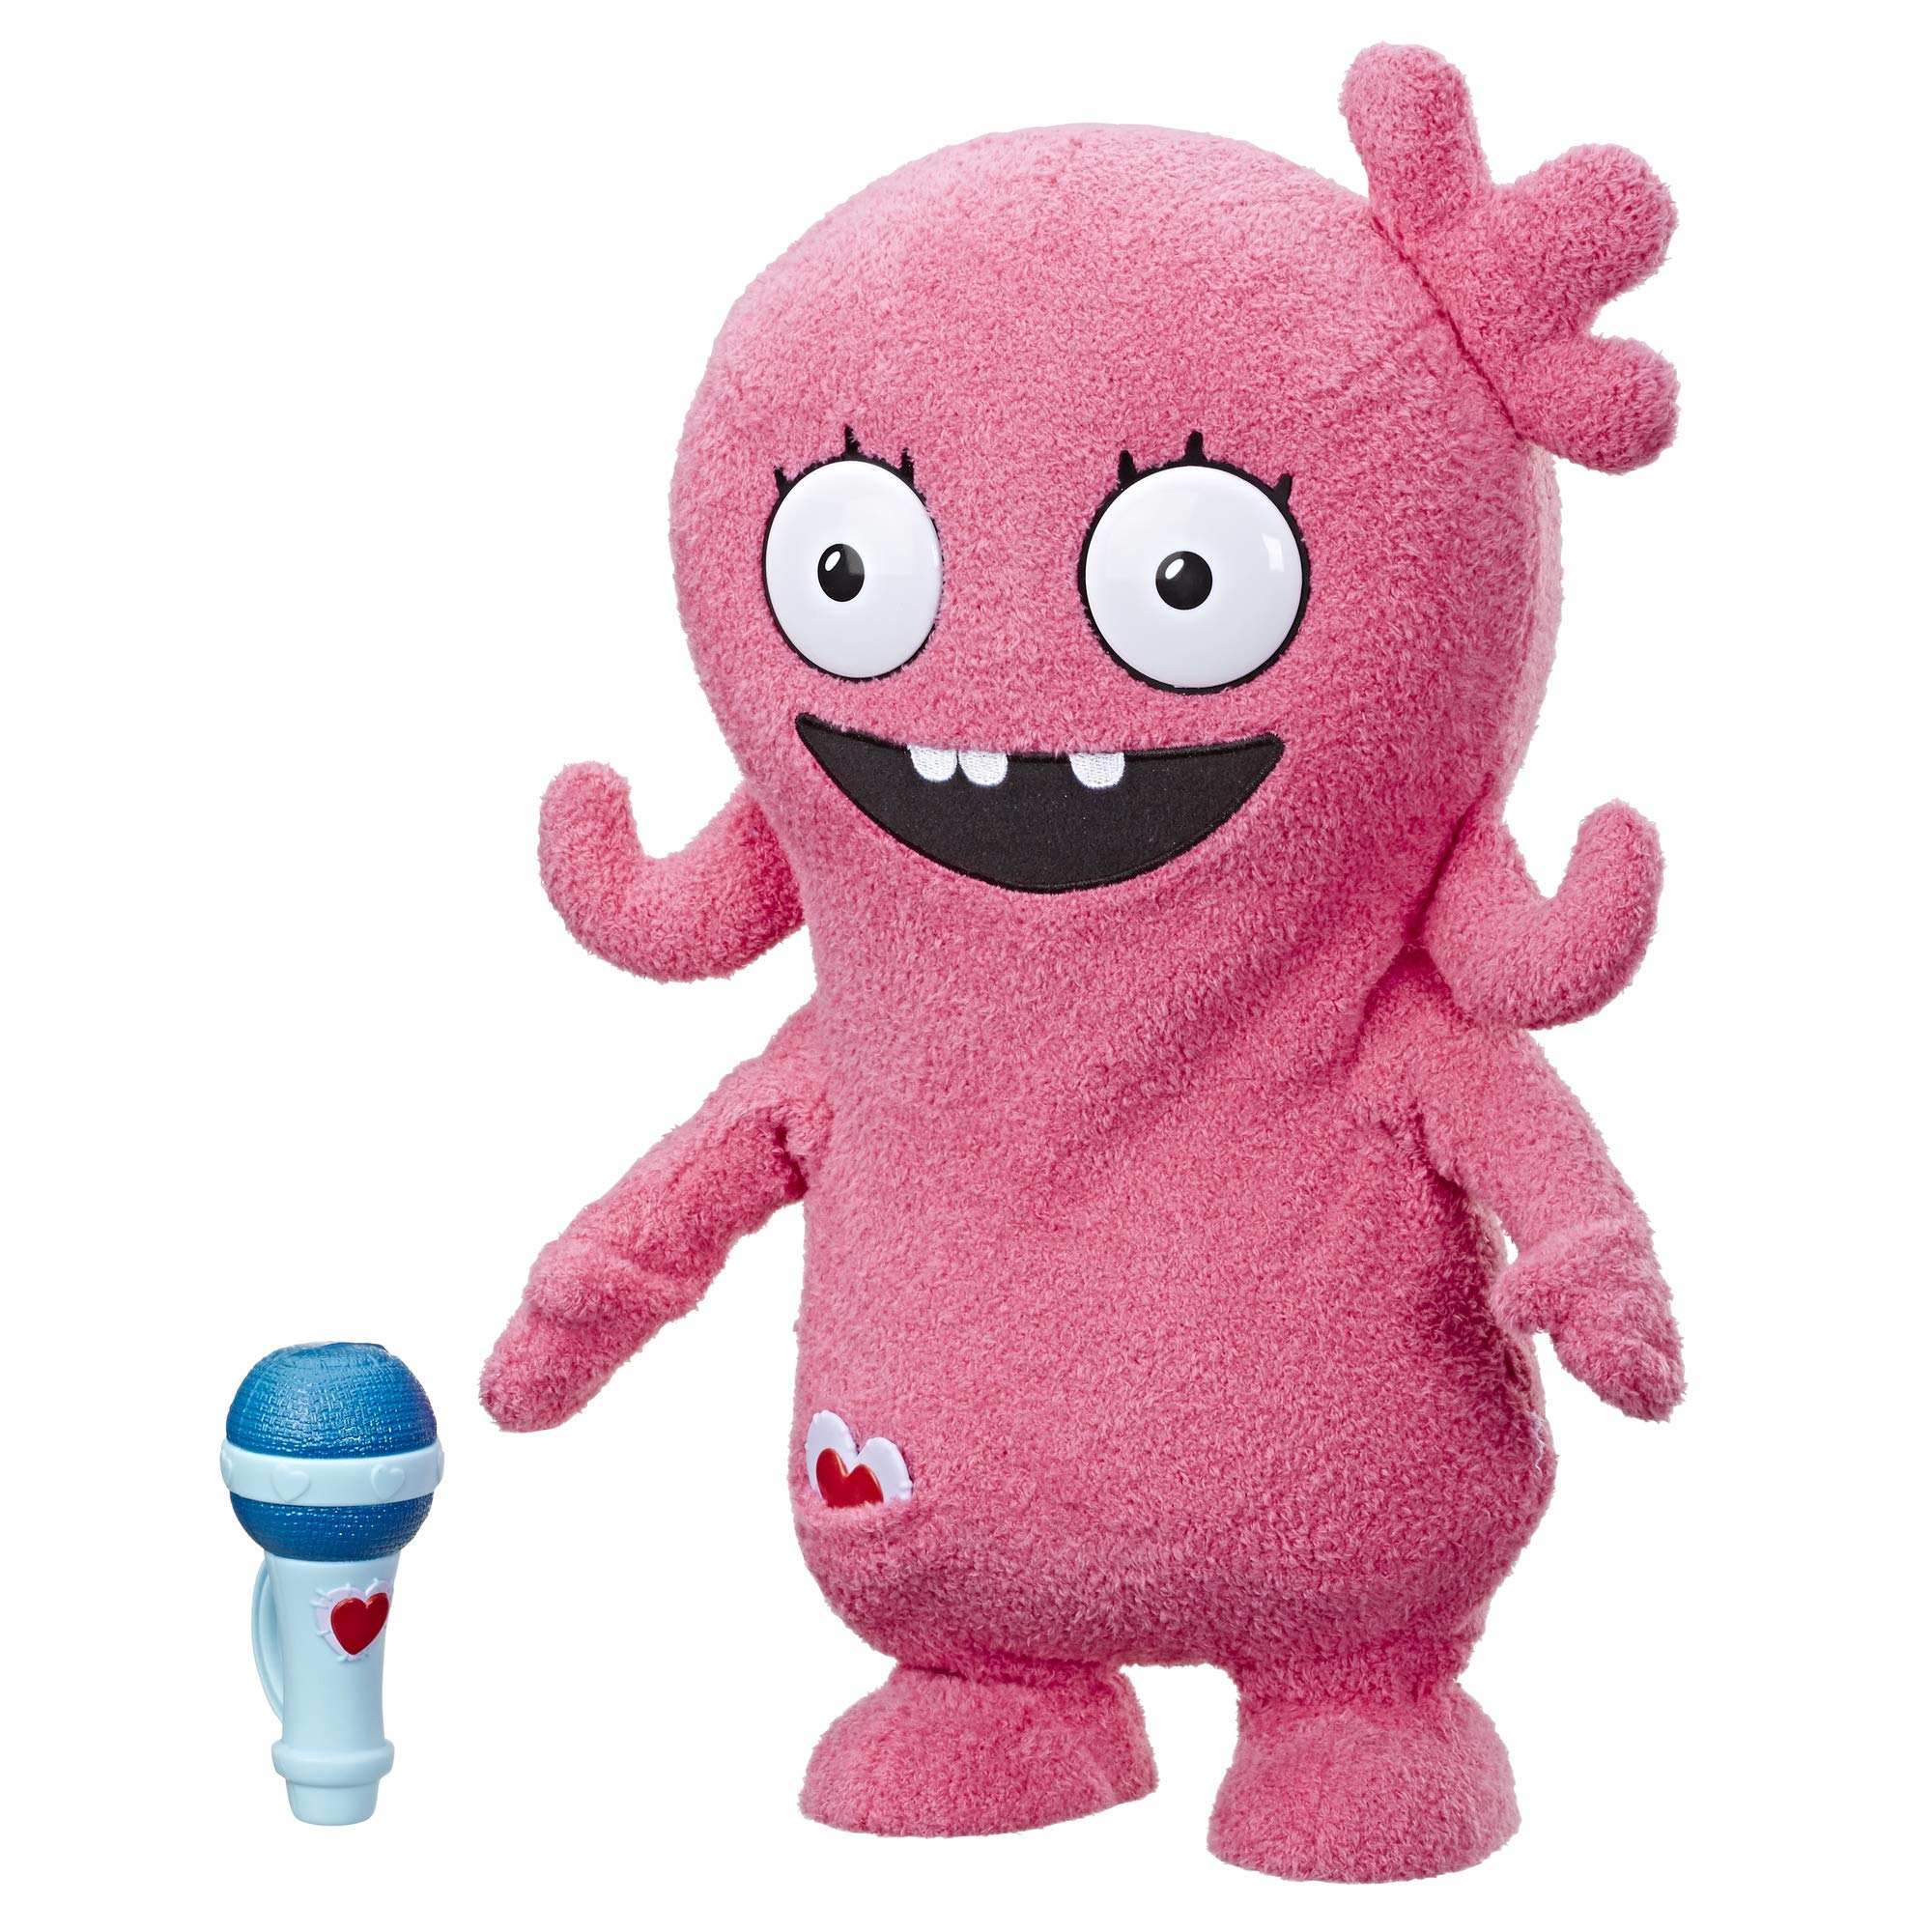 Hasbro UglyDolls Dance Moves Moxy, Toy That Talks, Sings, and Dances, 14 inches Tall by Hasbro